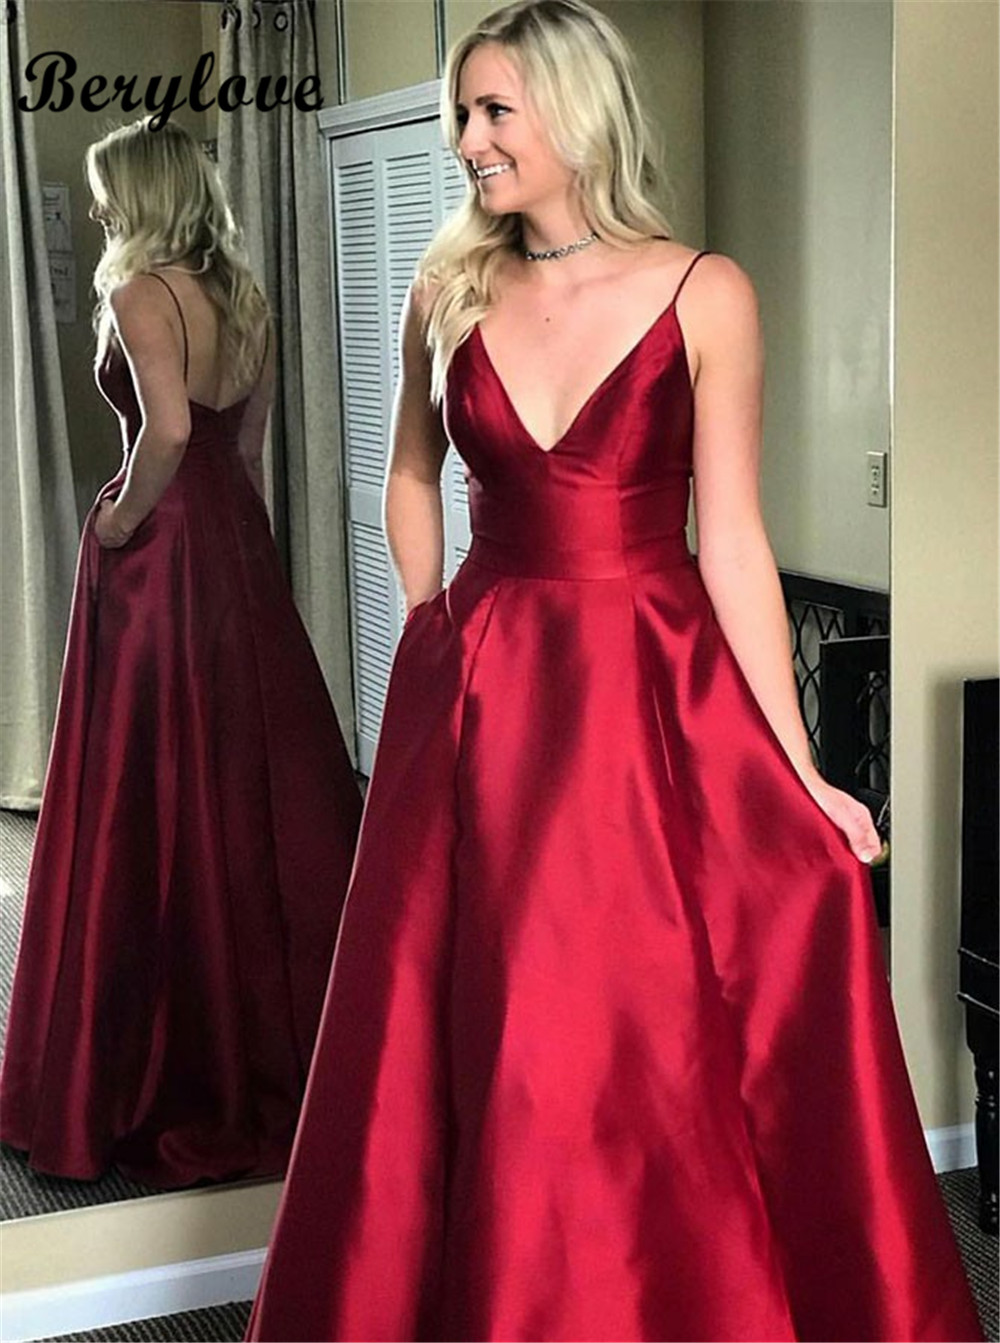 db6148f946 BeryLove Shiny Red Elegant Evening Dress Spagheti Straps Gown Formal V  Party Dress Prom Special Occasion